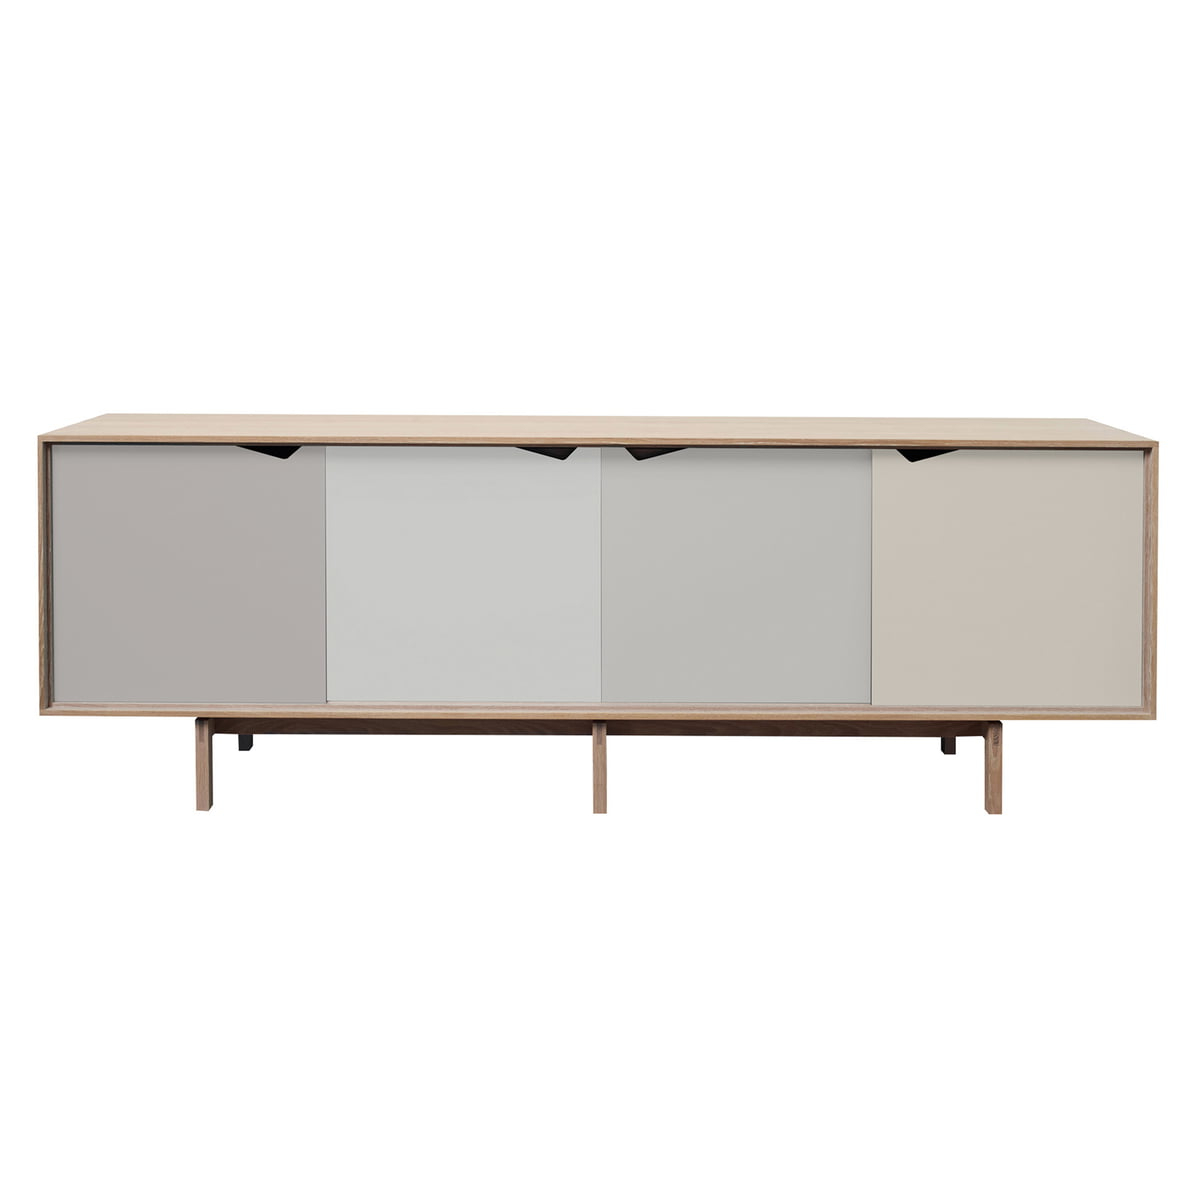 Well Known S1 Sideboard Multicoloured Andersen Furniture Intended For Iron Sideboards (Gallery 19 of 20)